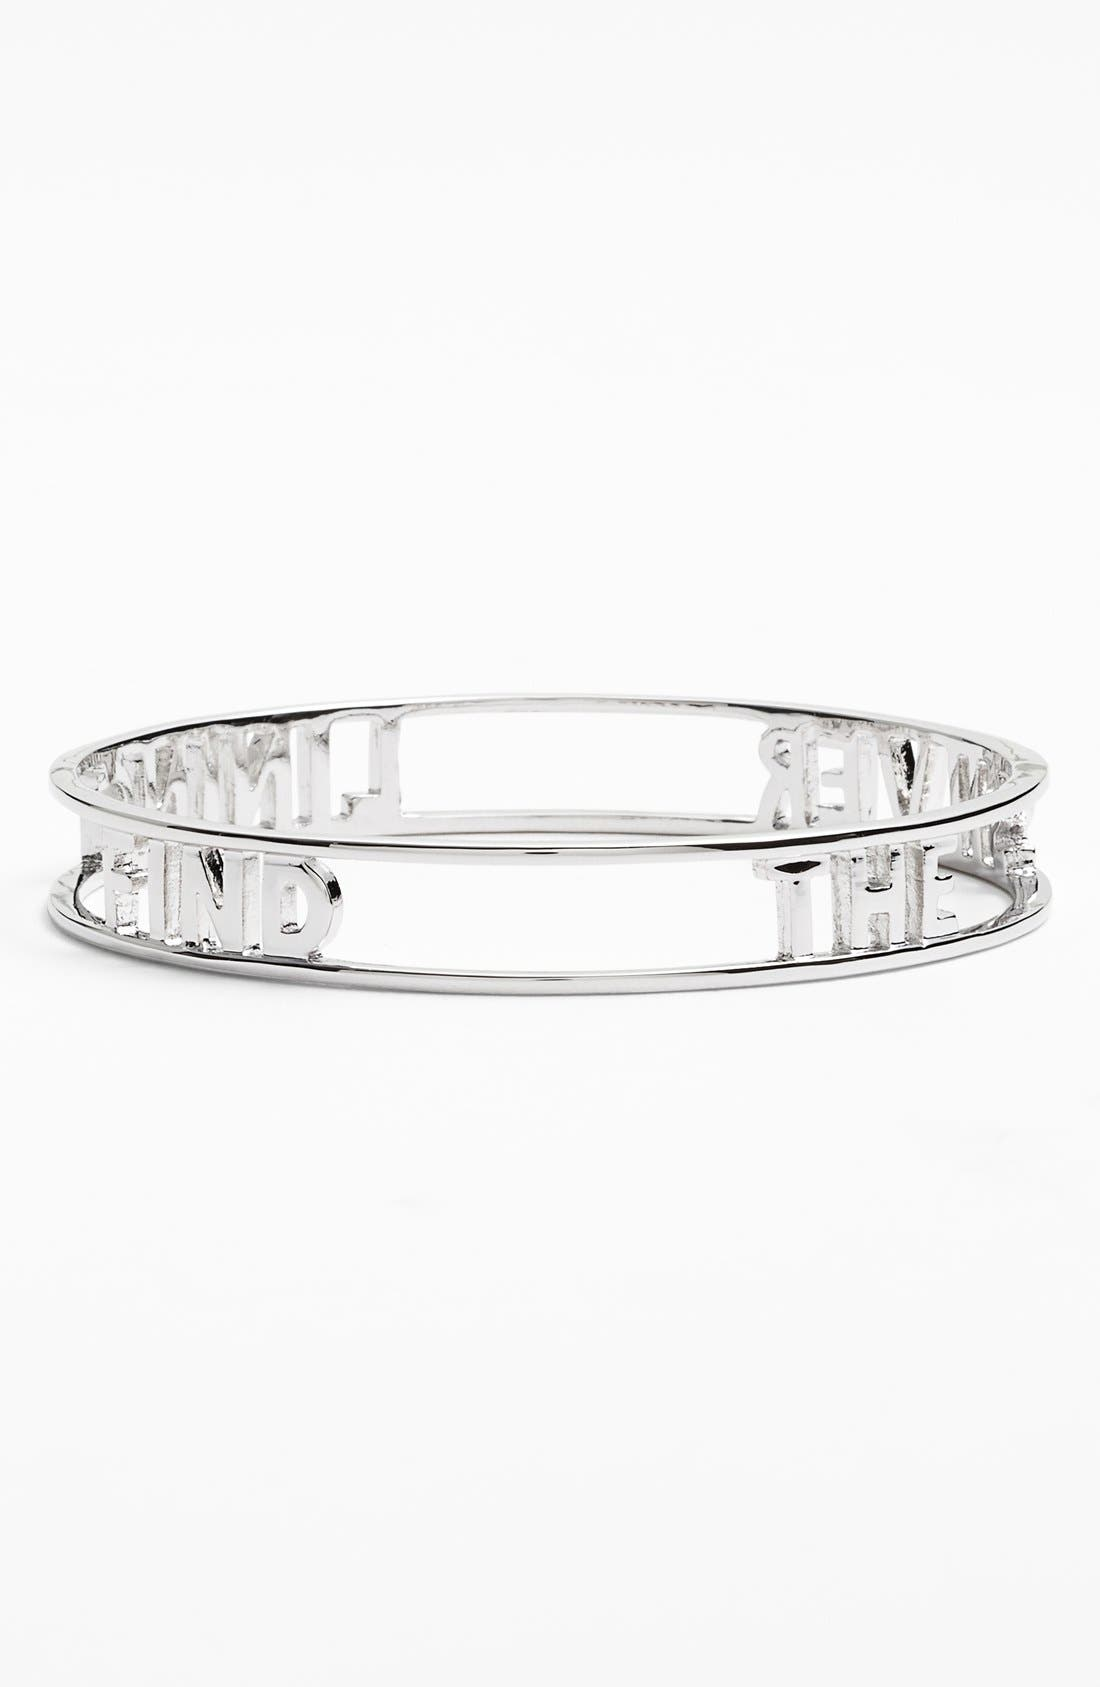 Alternate Image 1 Selected - kate spade new york 'words of wisdom - find the silver lining' bangle